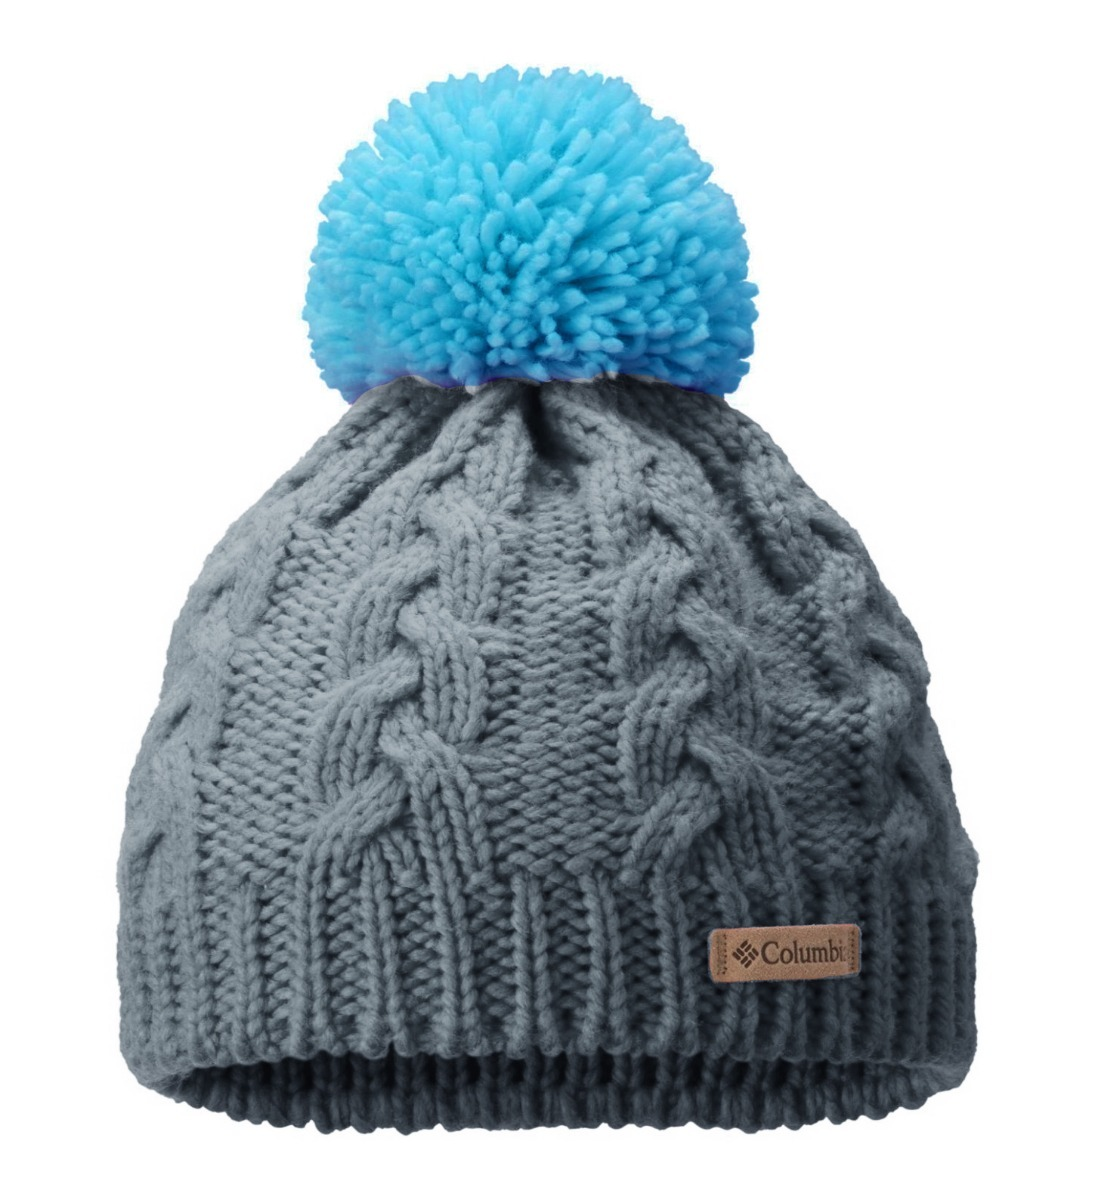 gorro tejido lana columbia in bounds beanie mujer. Cargando zoom. 7f60c5f20a7